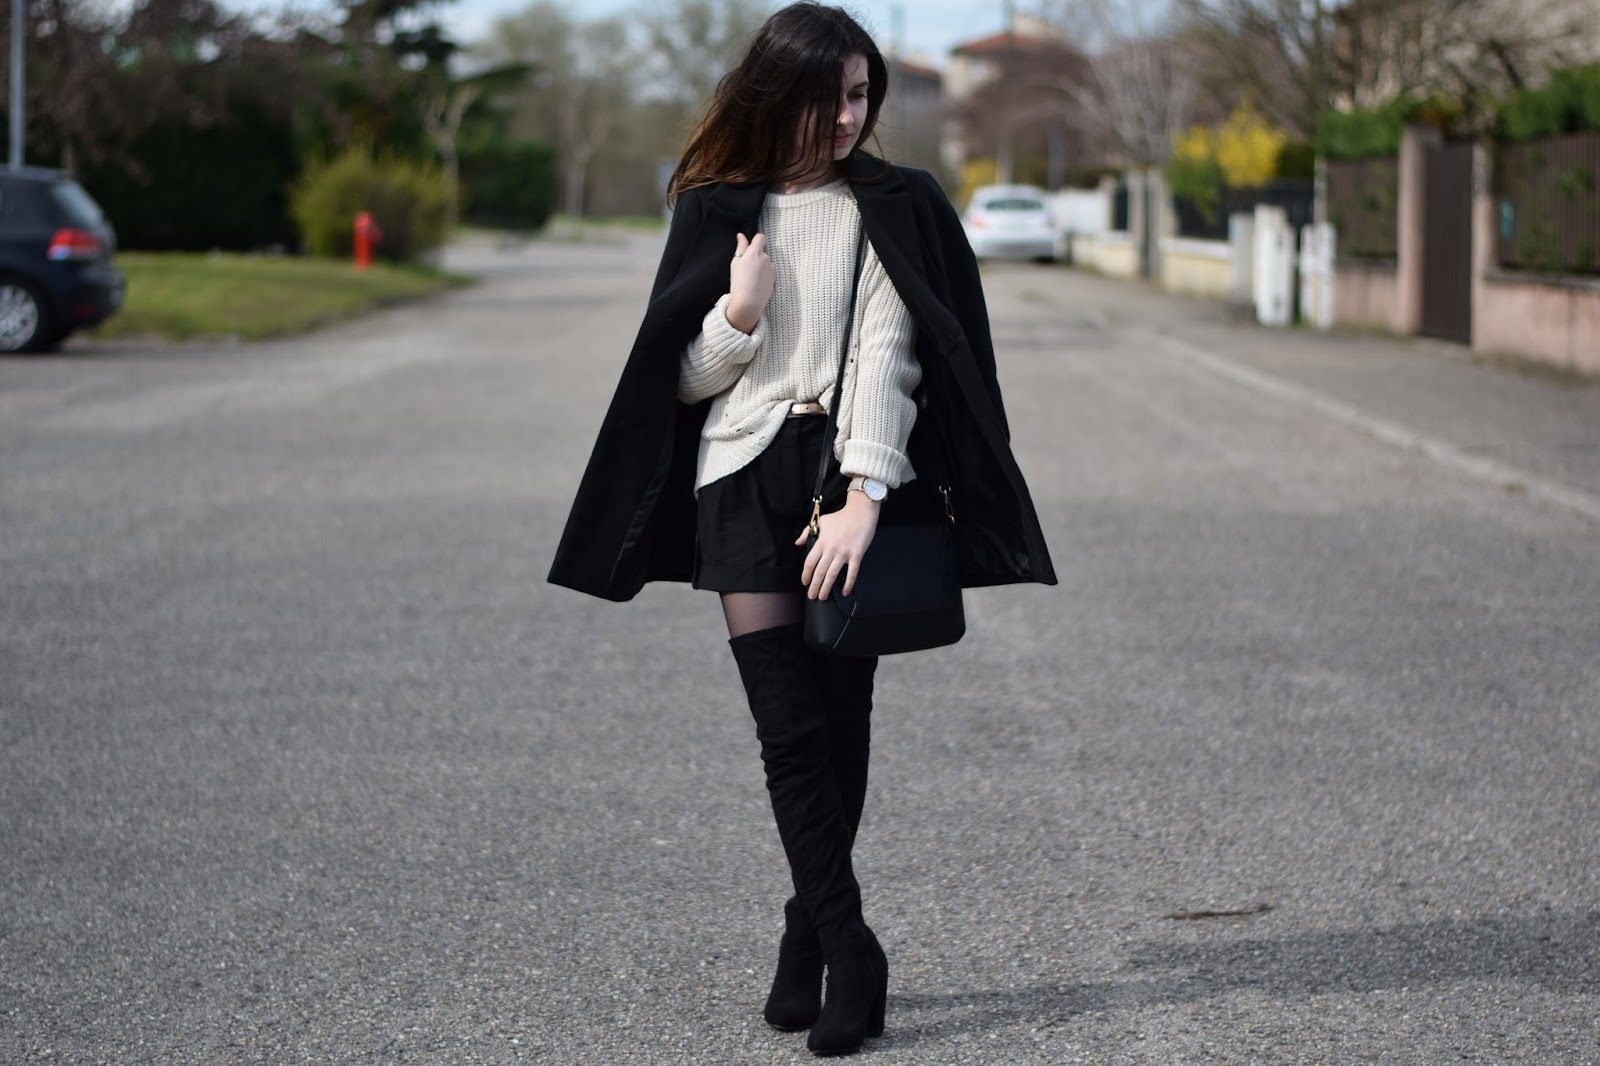 fashion h&m mode manteau noir